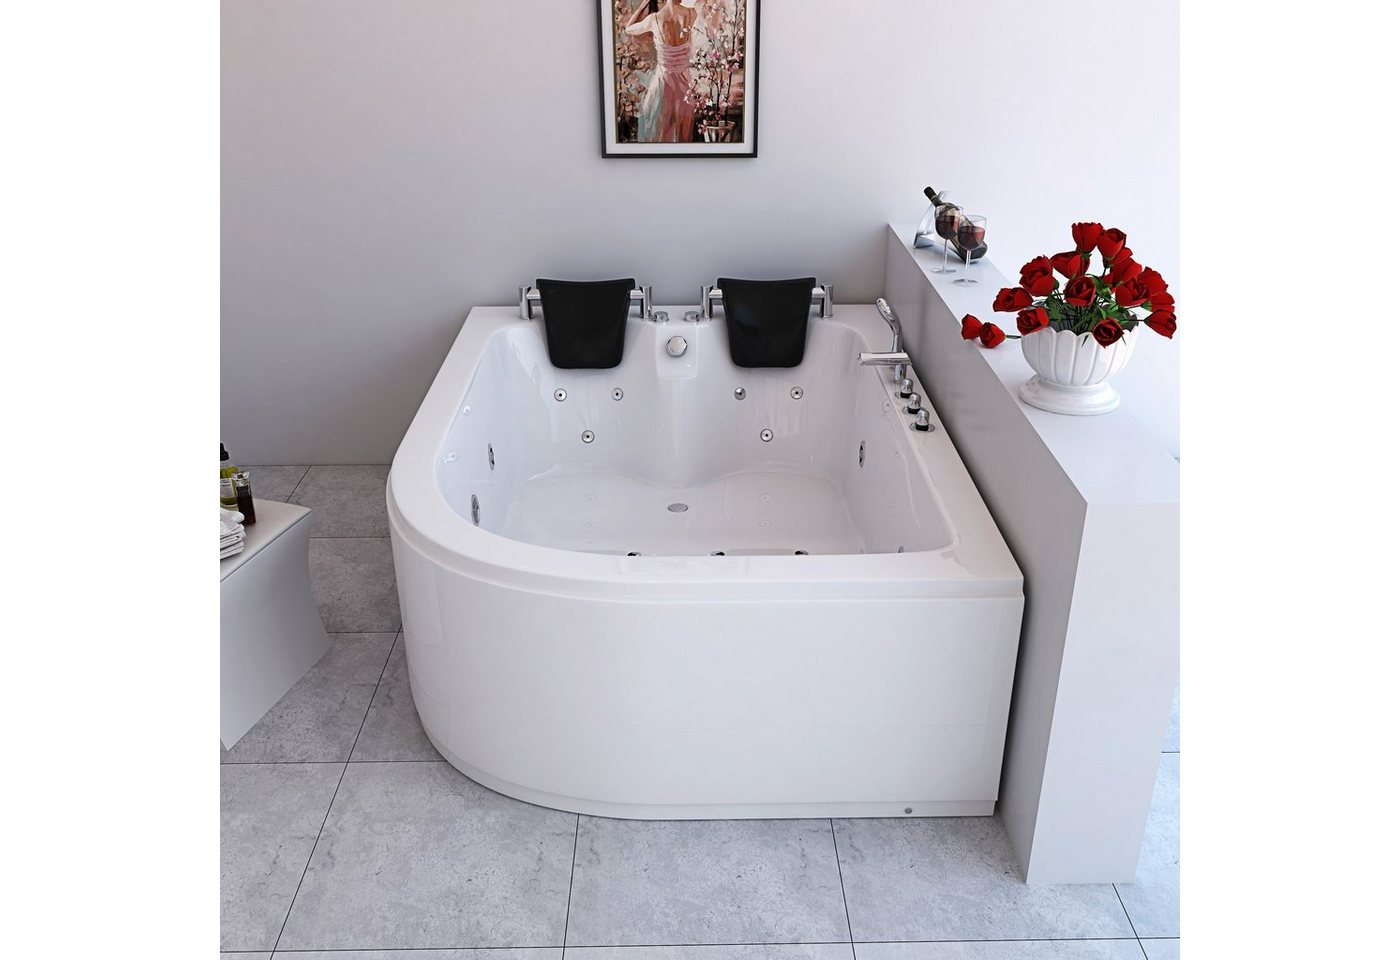 Whirlpool »Ancona XL rechts«, B/T/H in cm: 180/120/65 | Bad > Badewannen & Whirlpools > Whirlpools | HOME DELUXE